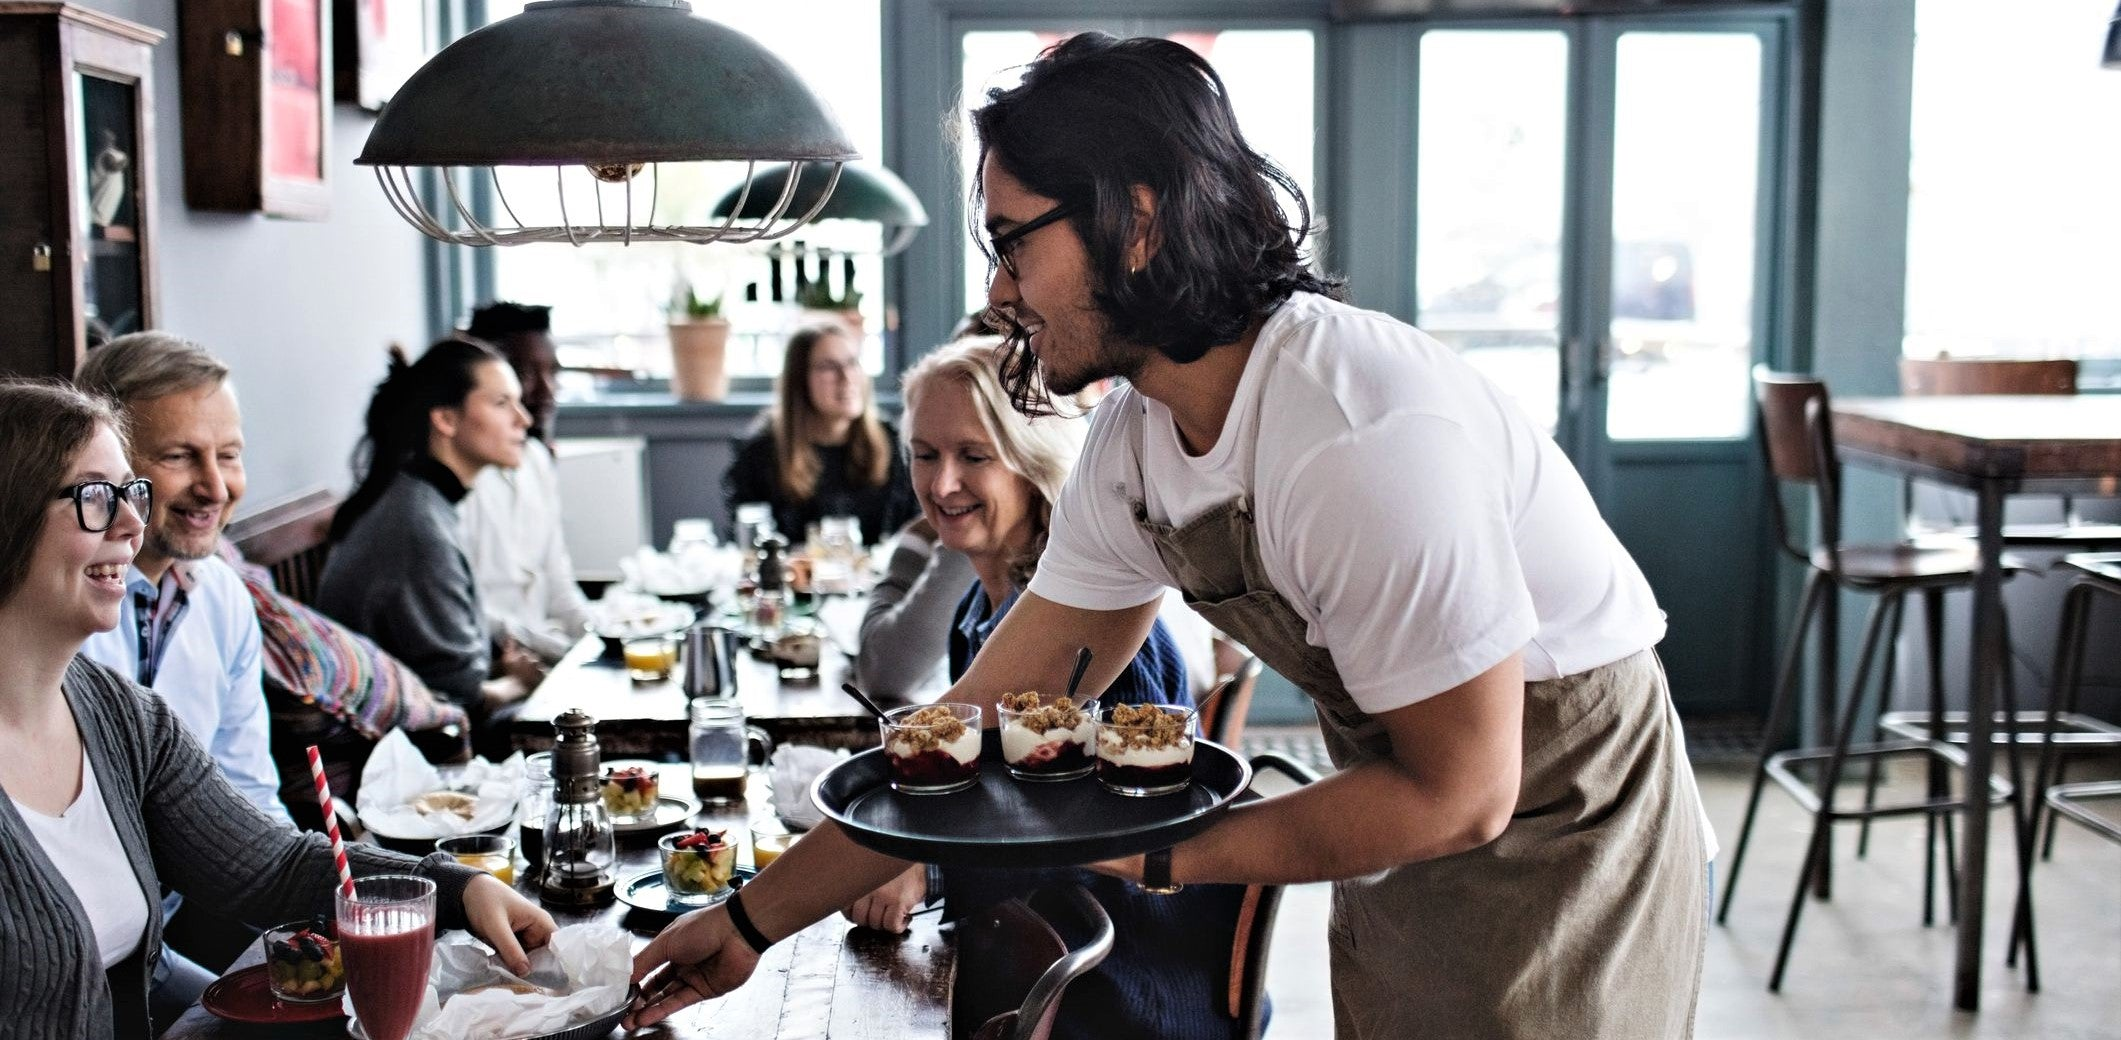 attractive young waiter with long hair and glasses delivers tray of desserts to table of smiling repeat customers